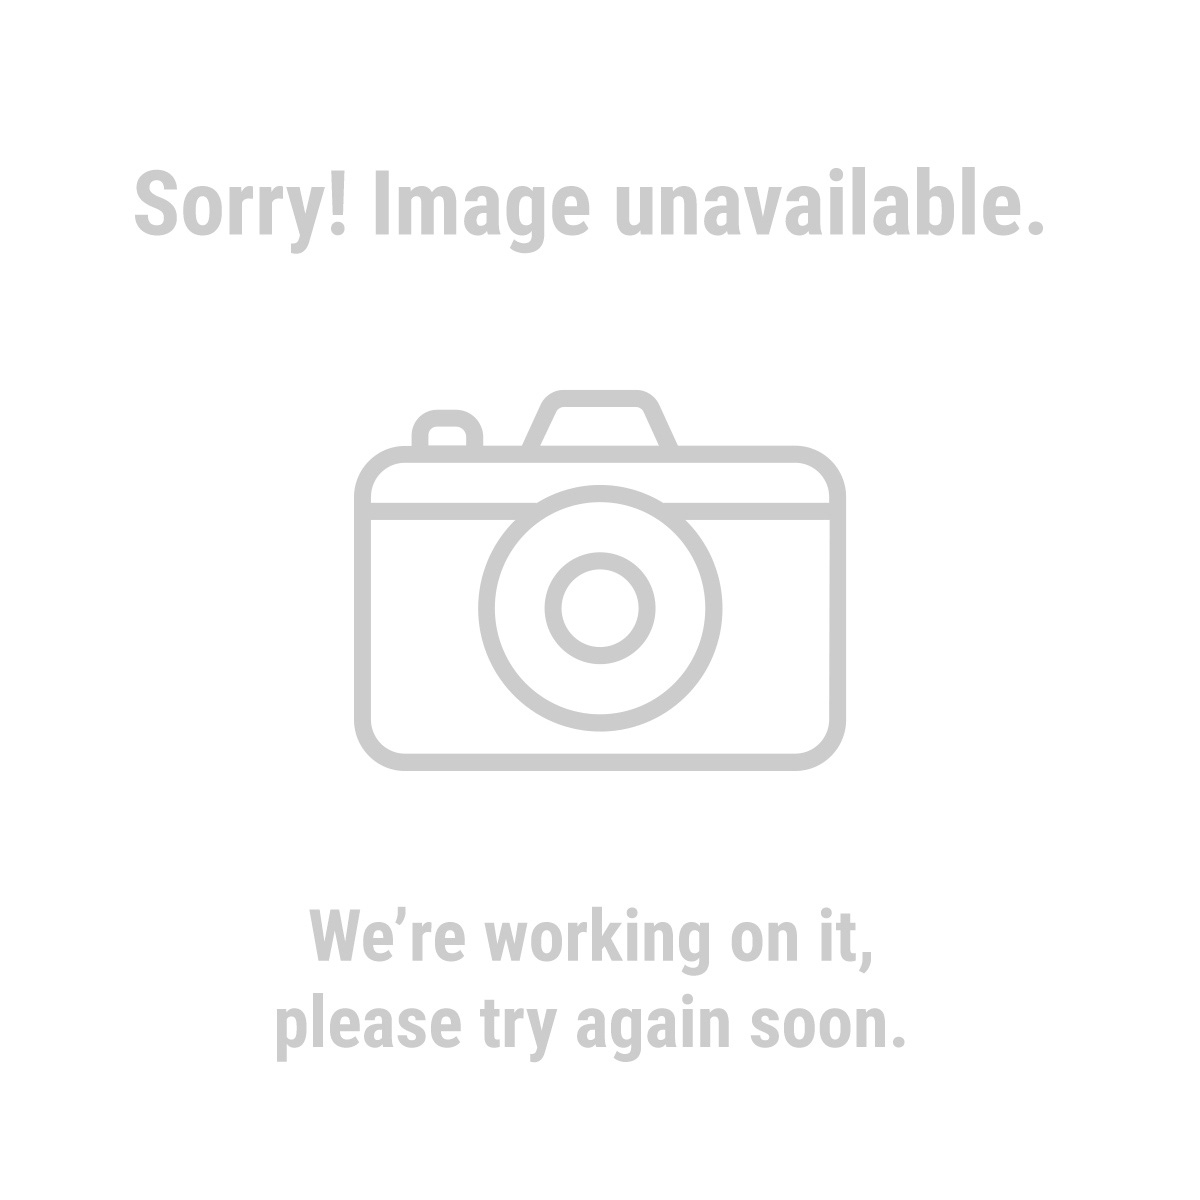 "Central Forge 92296 1"" Single Wheel Rope Pulley, 2 Piece Set"